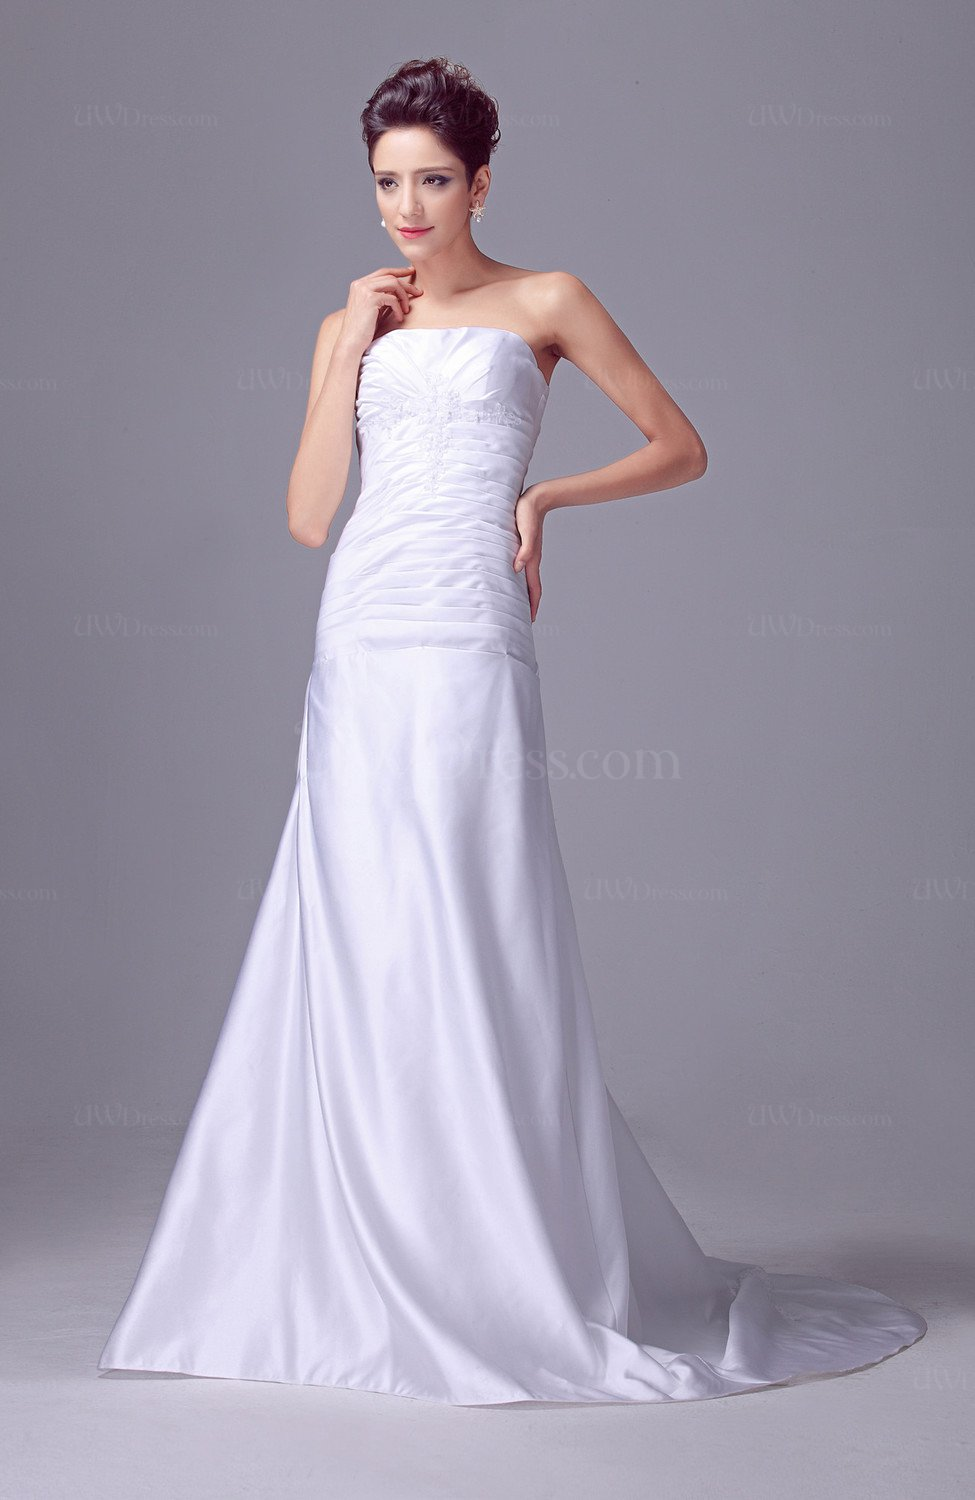 White allure bridal gowns open back classic sleeveless for Wedding dresses with interesting backs